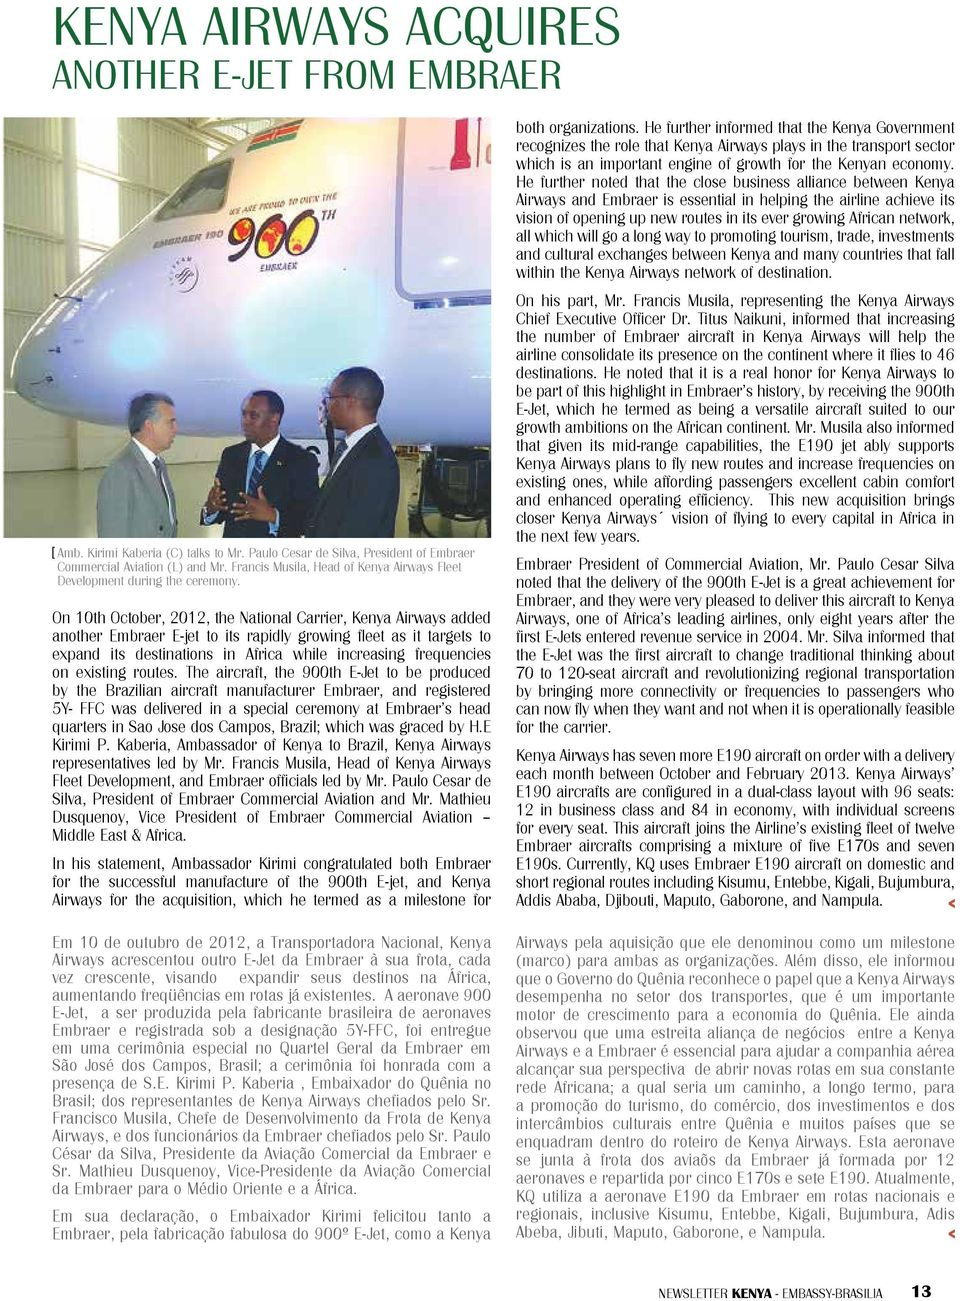 On 10th October, 2012, the National Carrier, Kenya Airways added another Embraer E-jet to its rapidly growing fleet as it targets to expand its destinations in Africa while increasing frequencies on